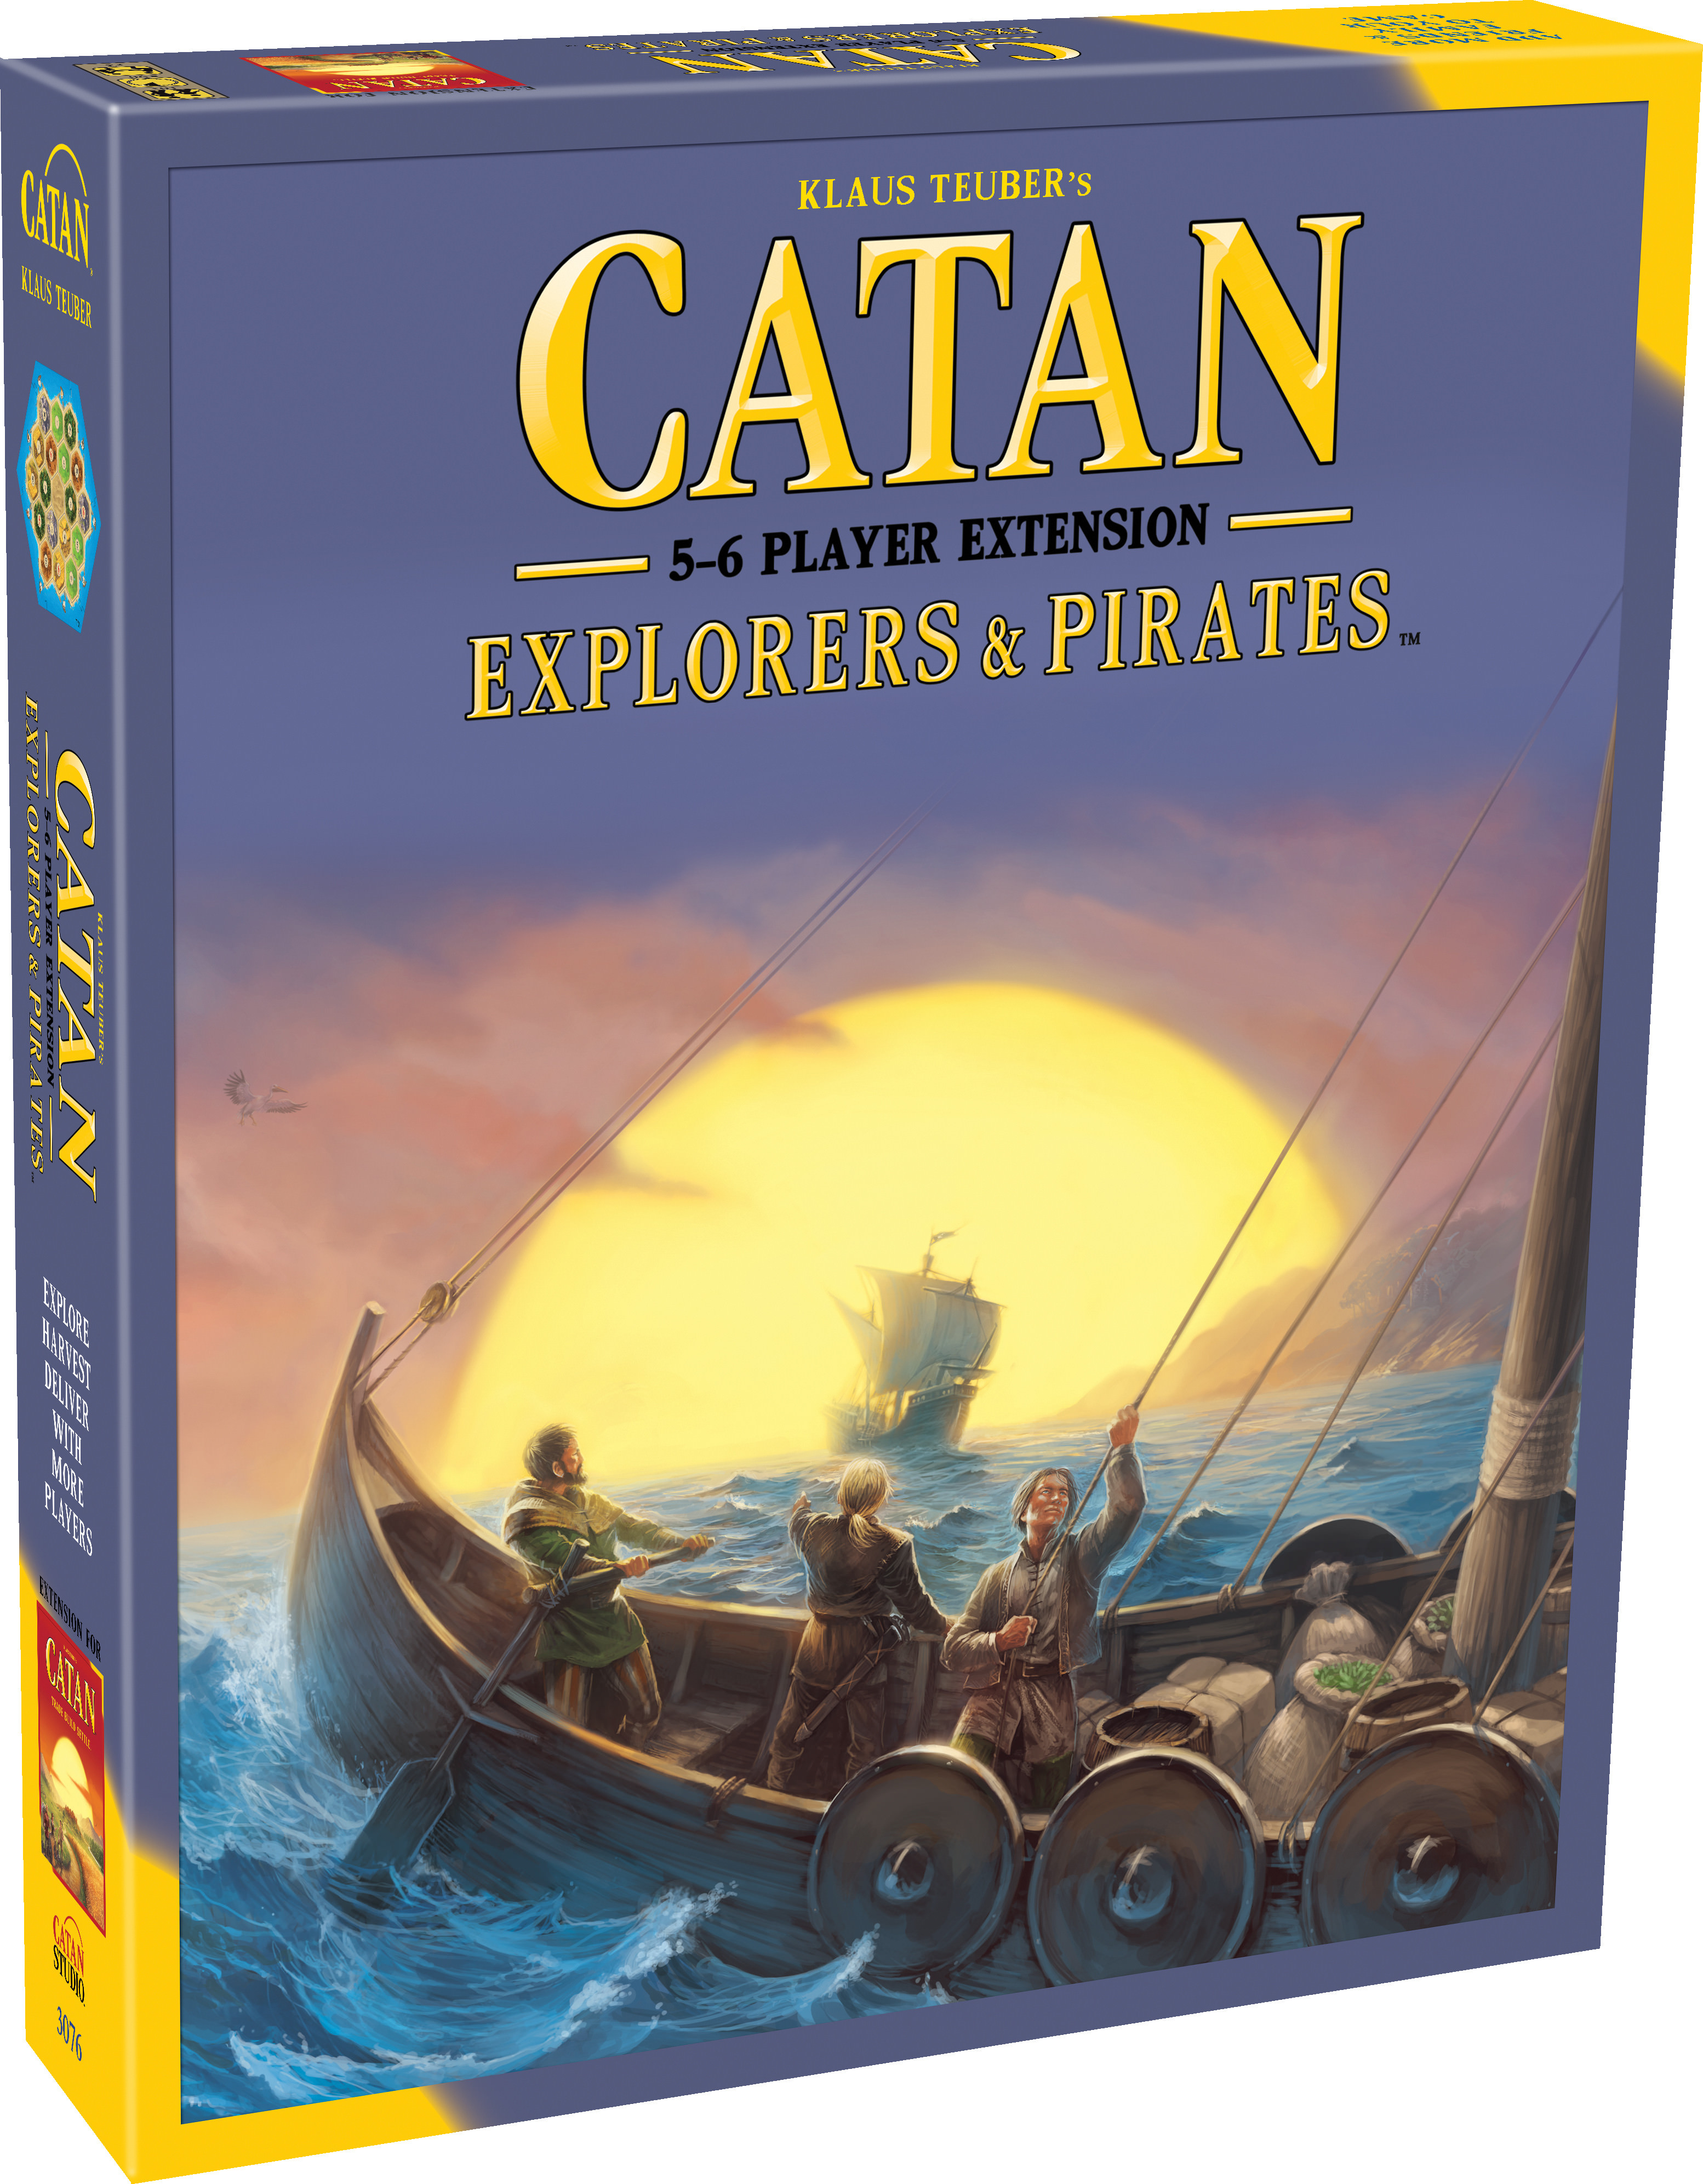 Catan 5th Edition - Explorers & Pirates 5-6 Player Expansion